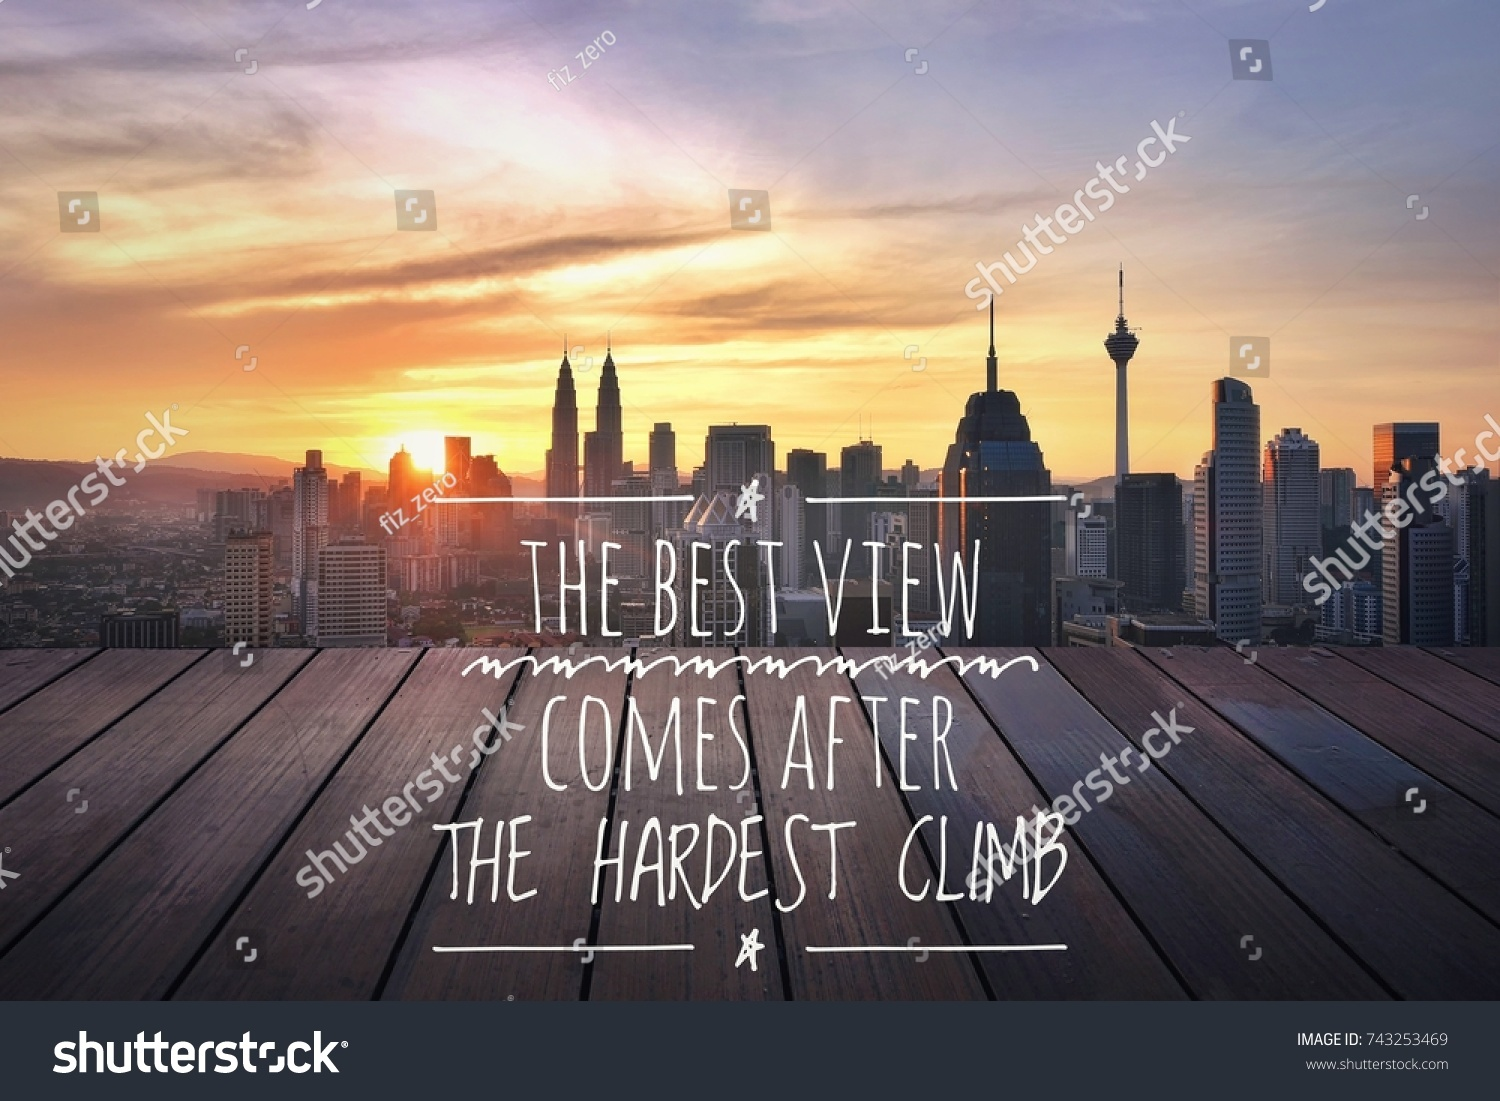 Inspirational Motivation Quotes Background Cityscape Sunset Stock